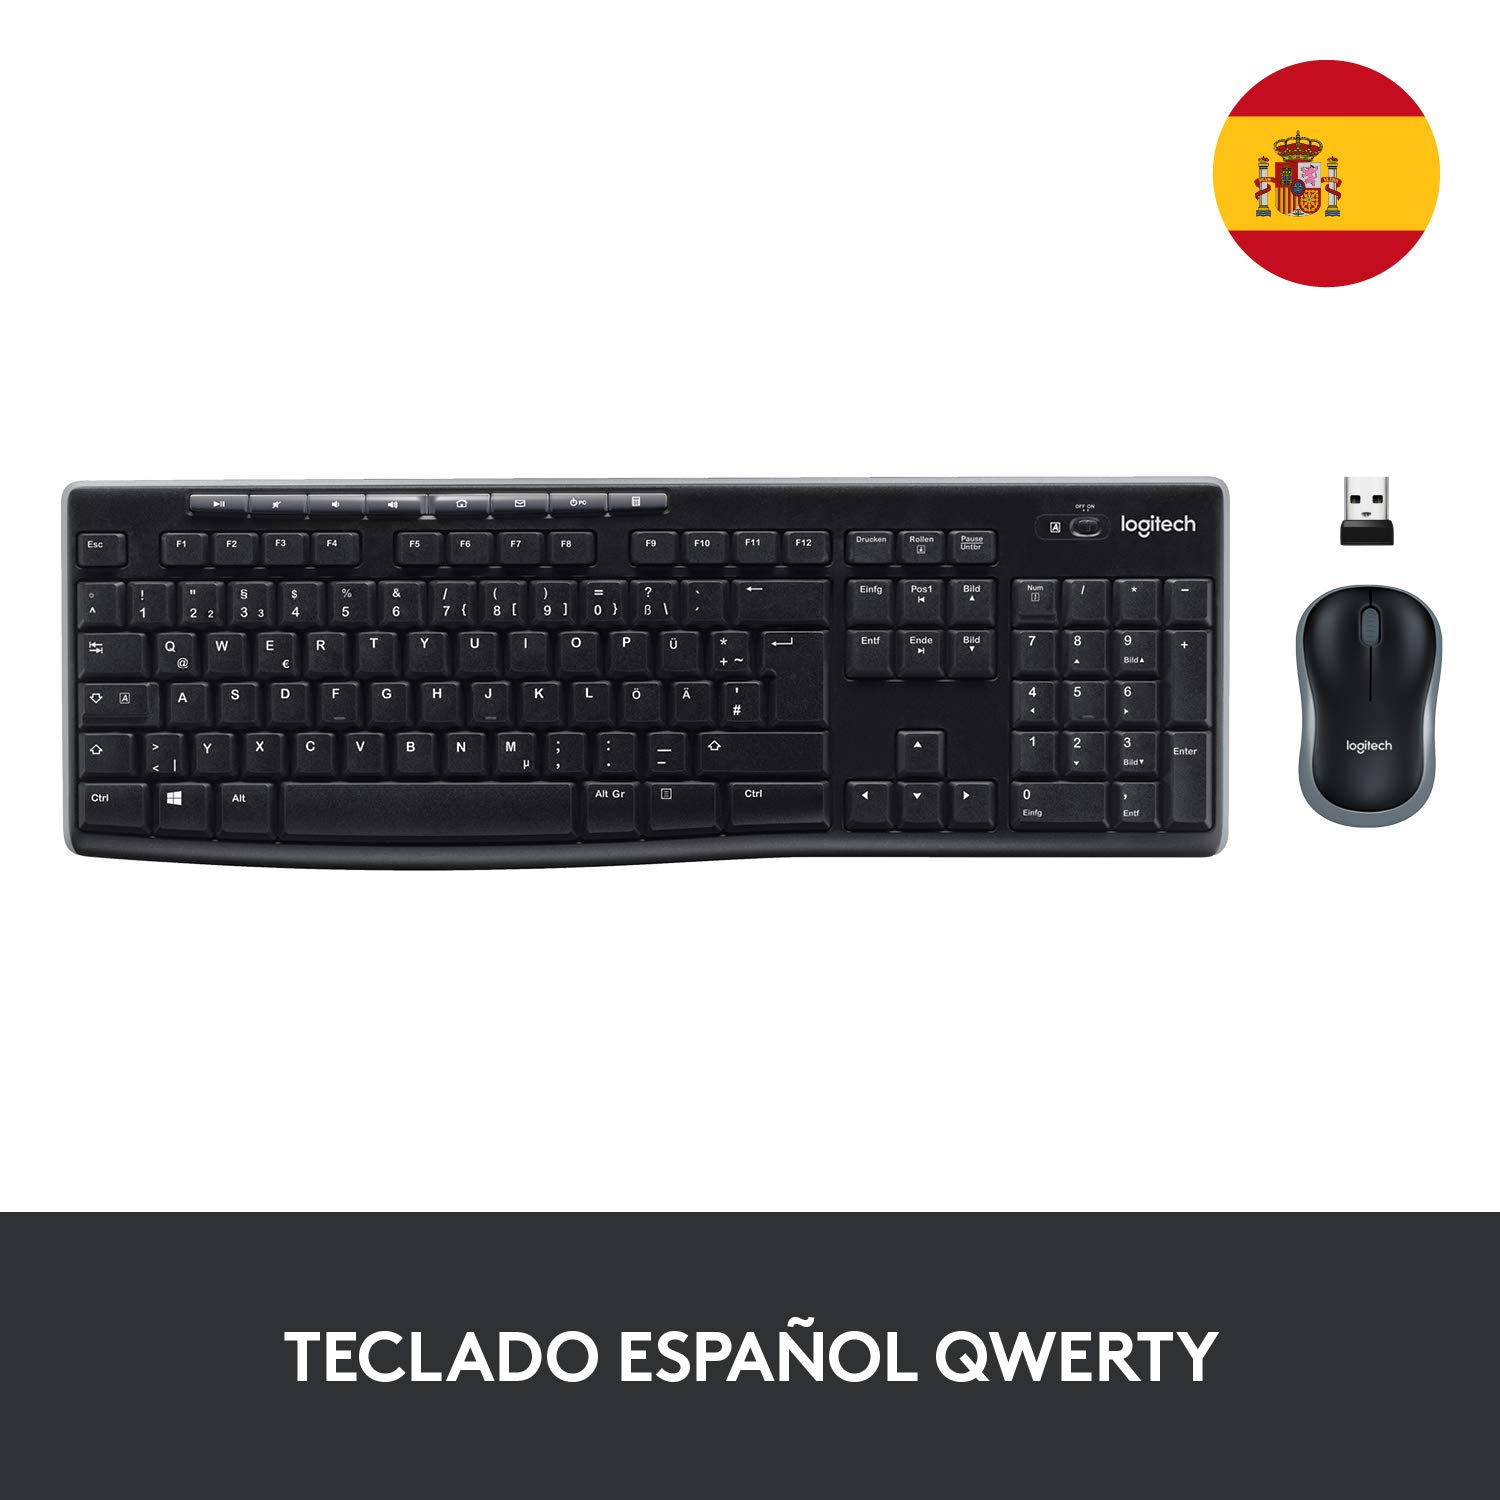 con Ricevitore Unifying Layout Spagnolo QWERTY Logitech MK270 Kit Tastiera e Mouse Wireless